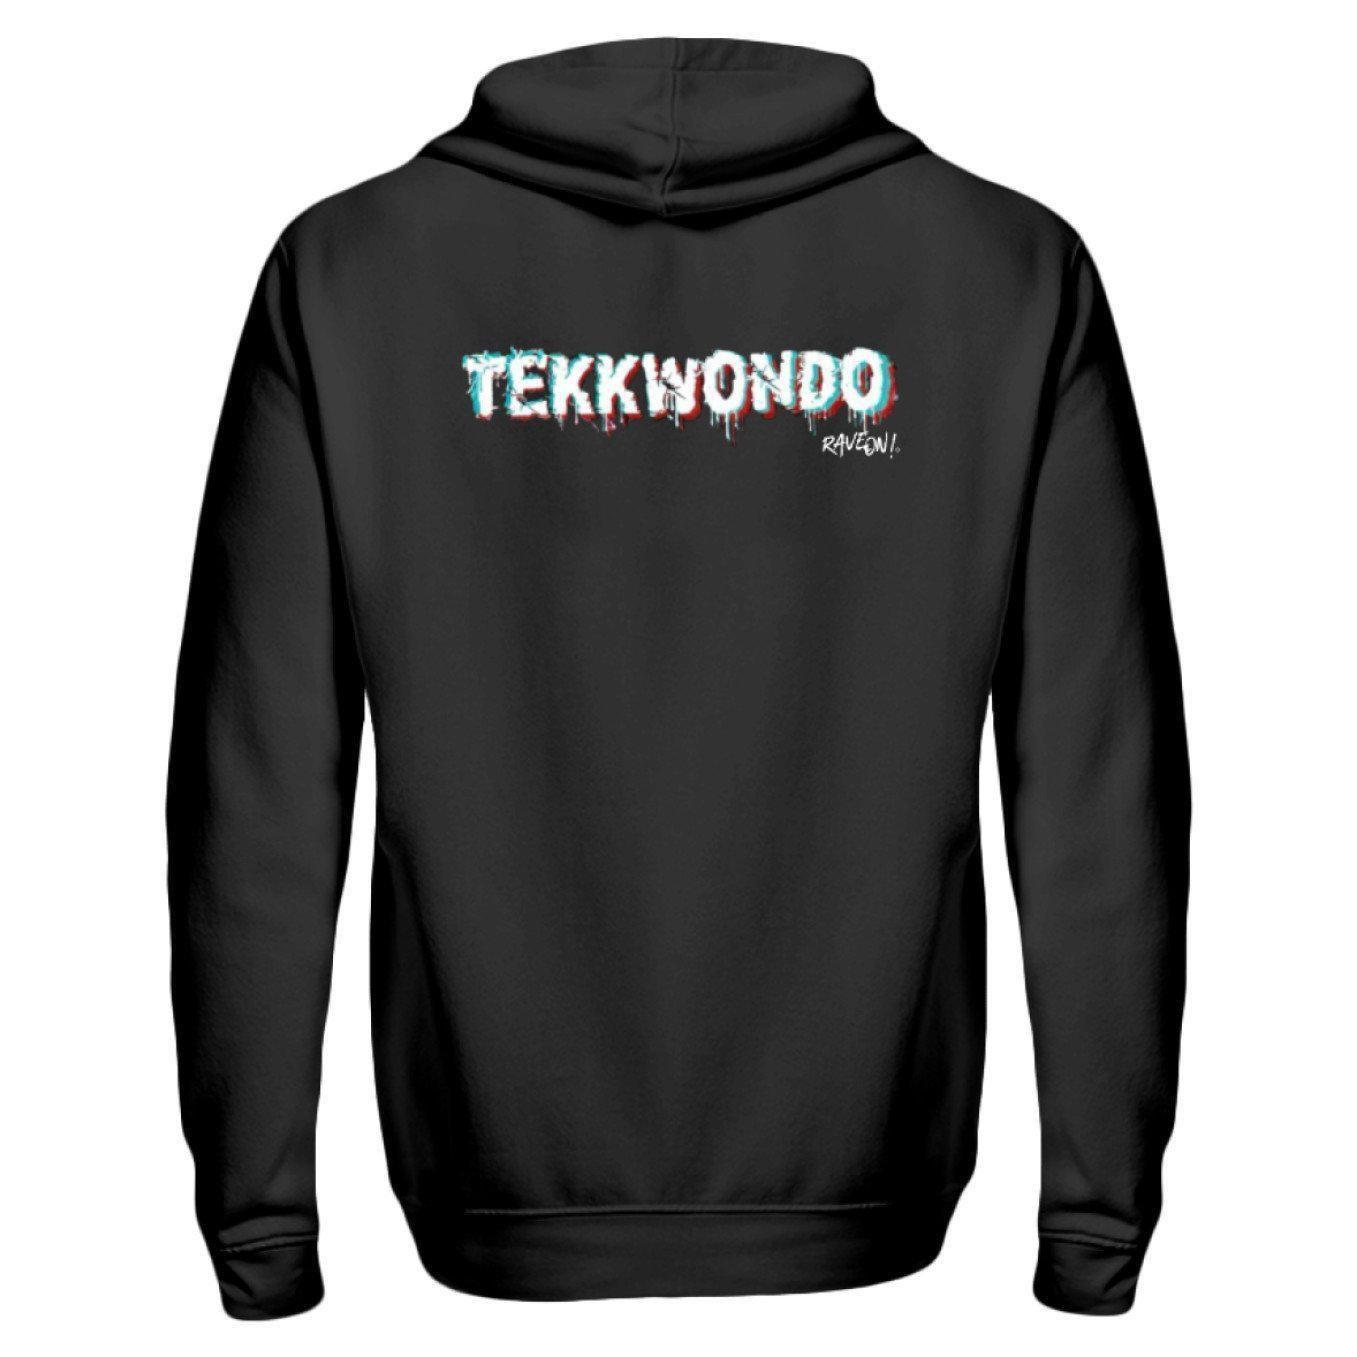 TEKKWONDO by Rave On!® - Zip-Hoodie ZipperB Schwarz / S - Rave On!® der Club & Techno Szene Shop für Coole Junge Mode Streetwear Style & Fashion Outfits + Sexy Festival 420 Stuff